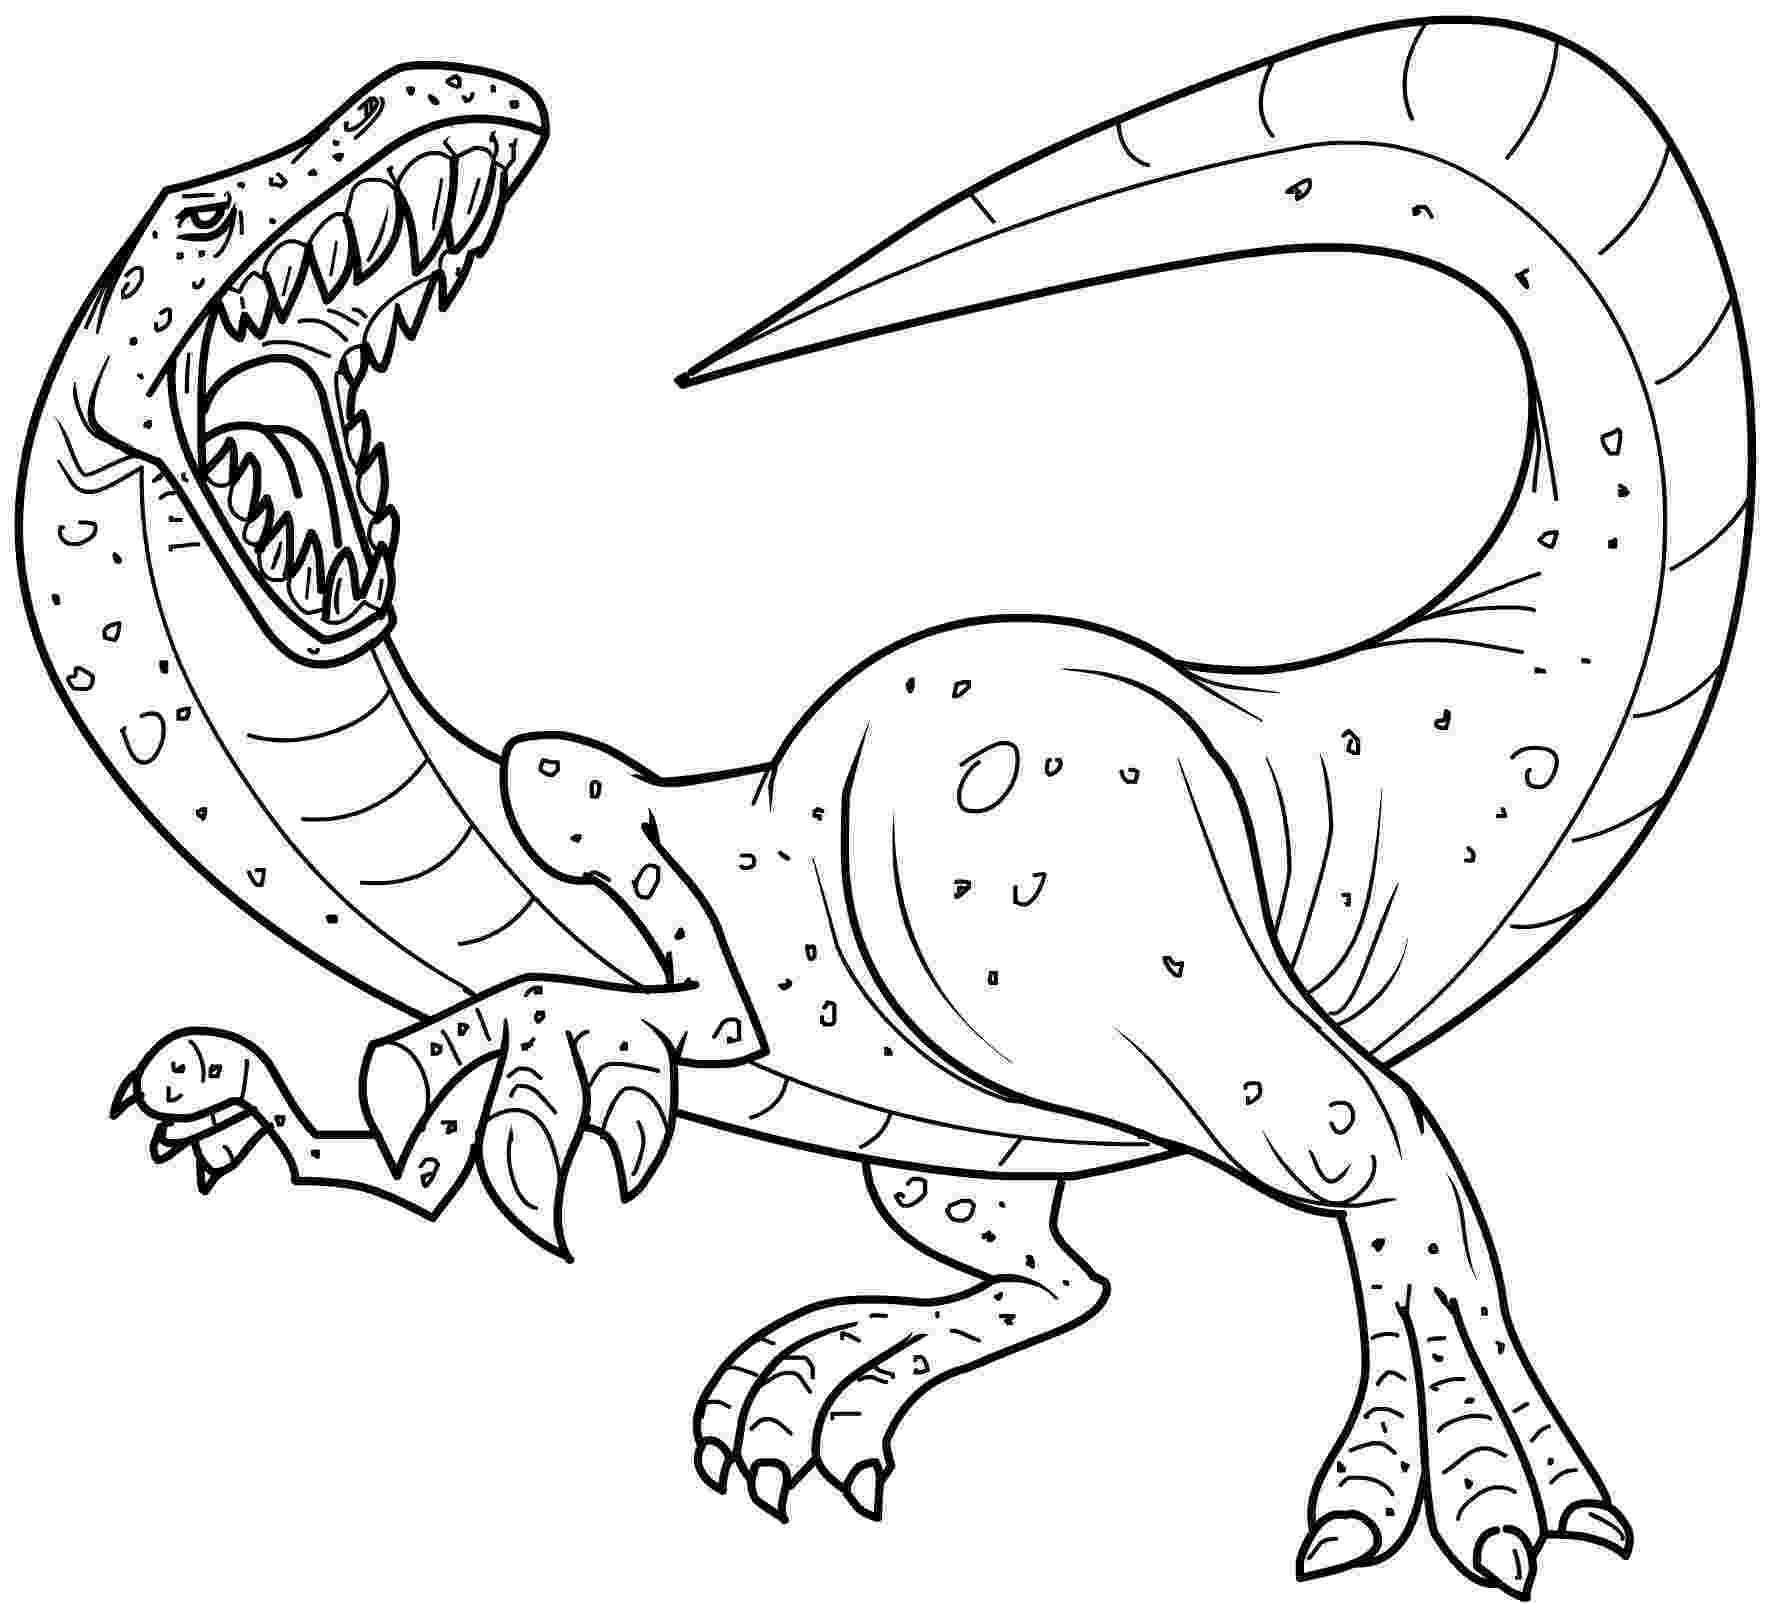 dinosaur pictures to color printable dinosaur coloring pages for kids cool2bkids dinosaur color to pictures